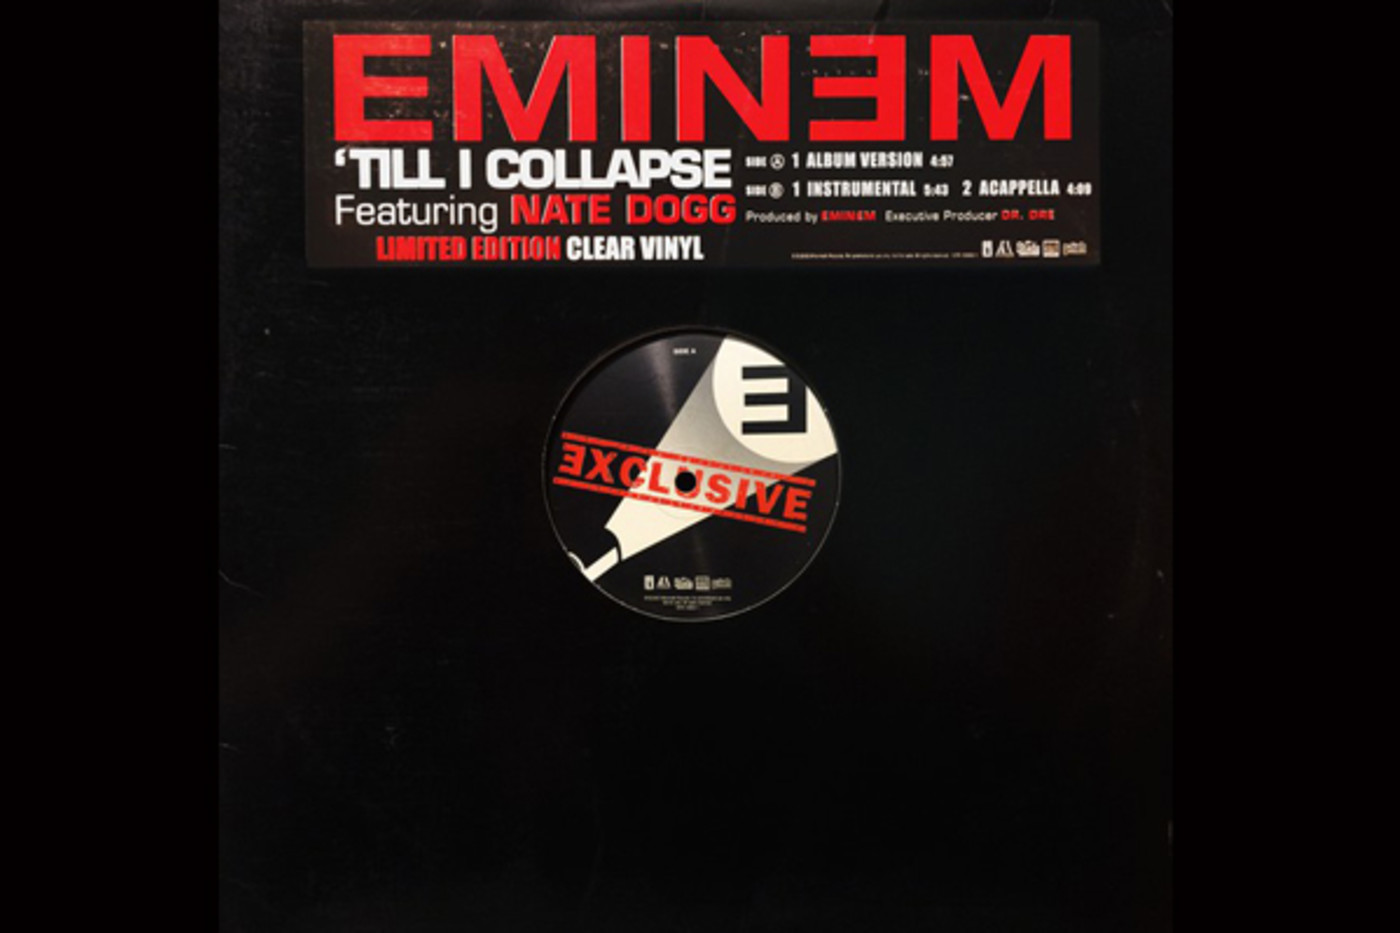 best-eminem-songs-till-i-collapse